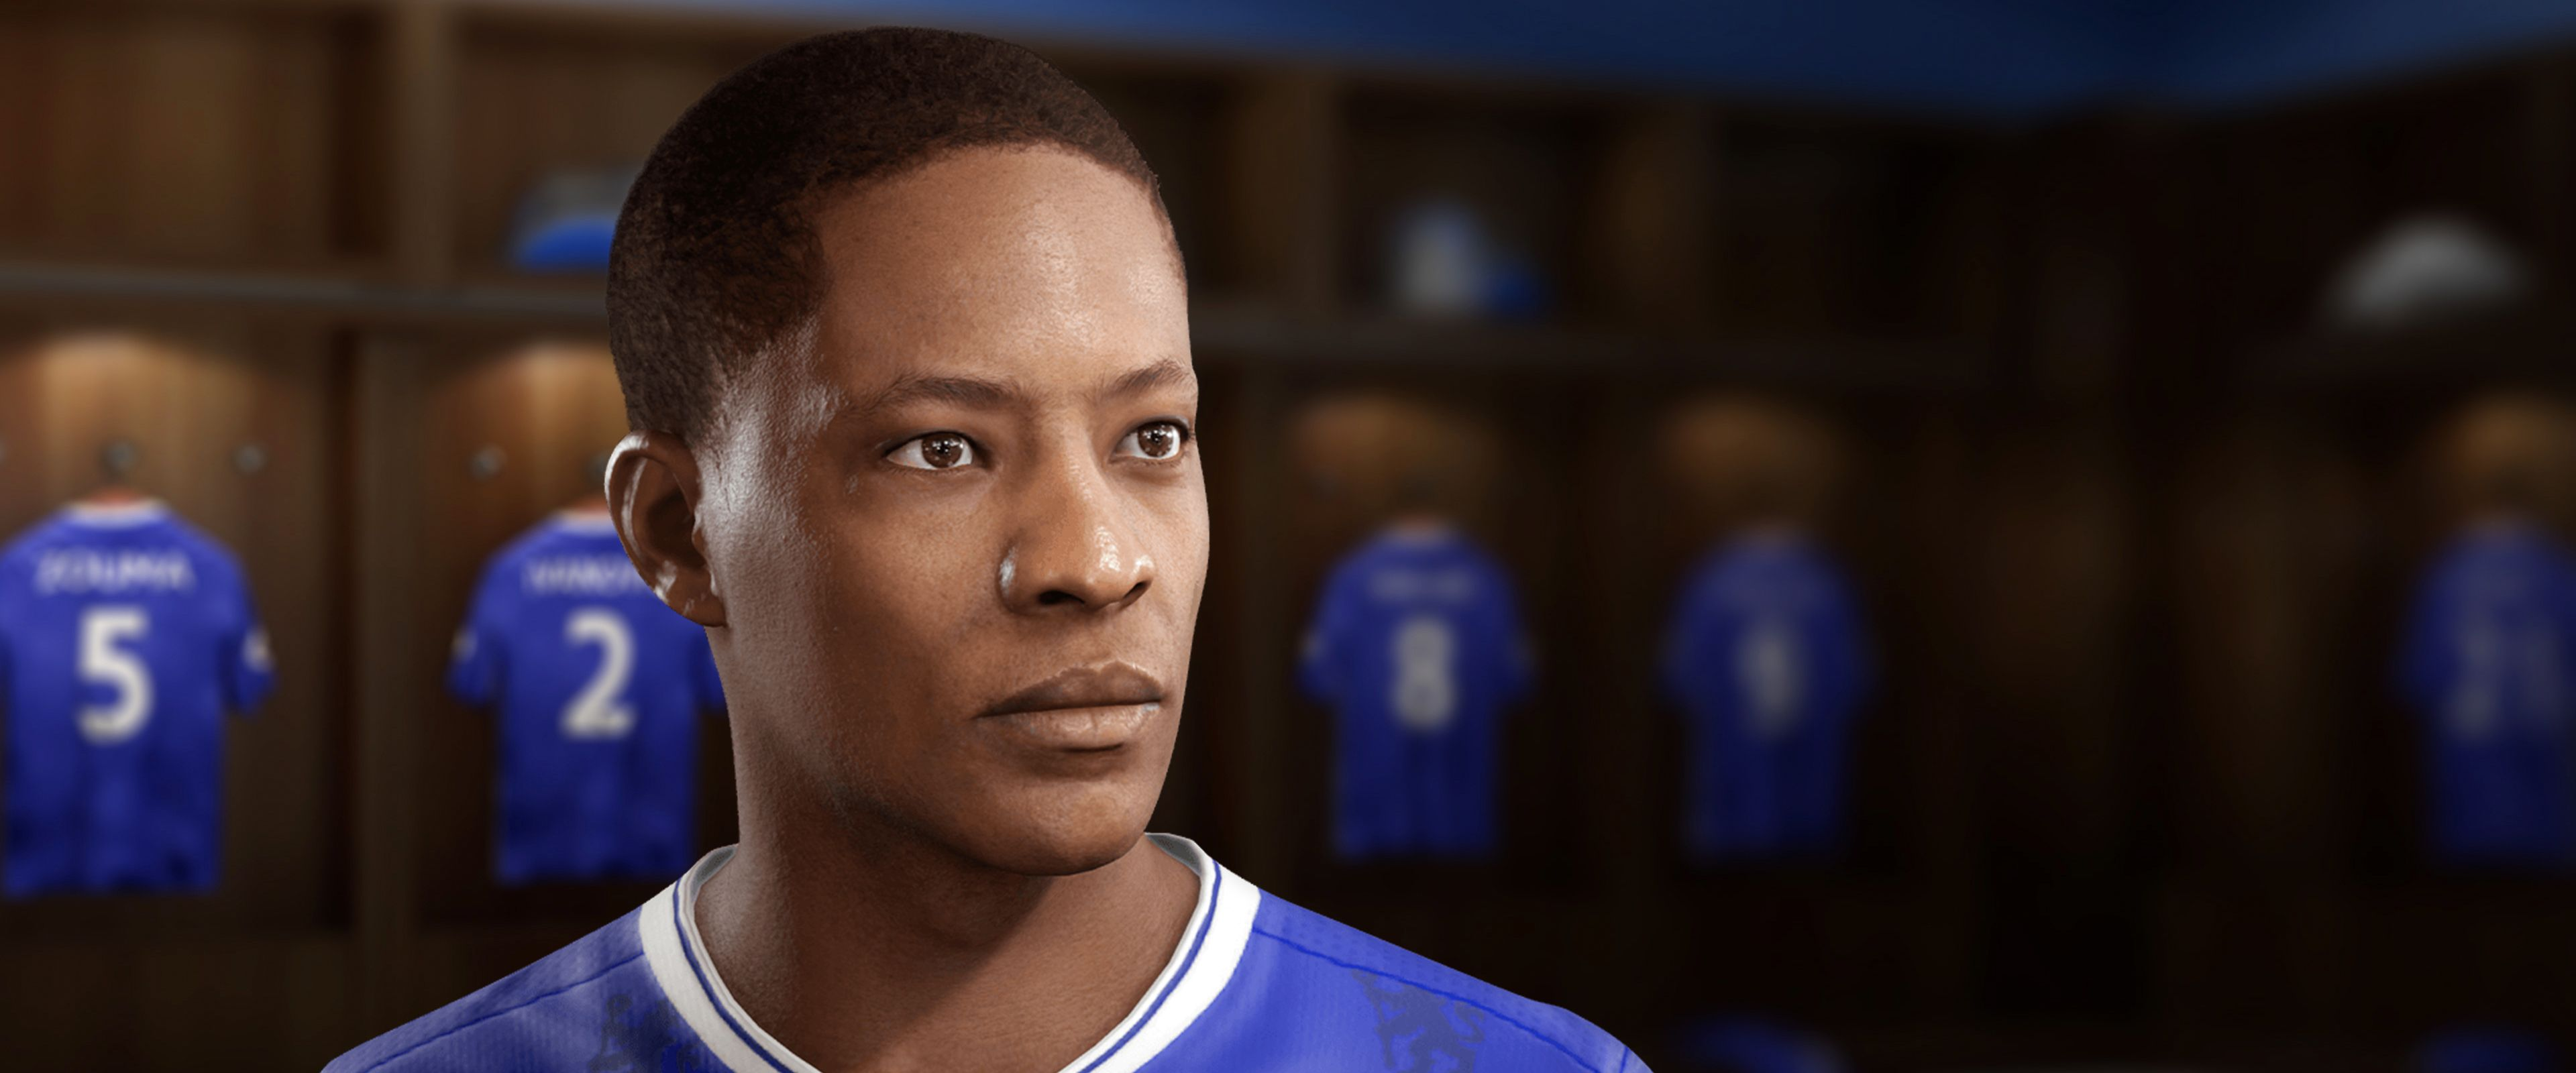 Fifa 17, the hunter, alex hunter, the journey, new game mode, leicester city, premier league, premiership, gareth walker